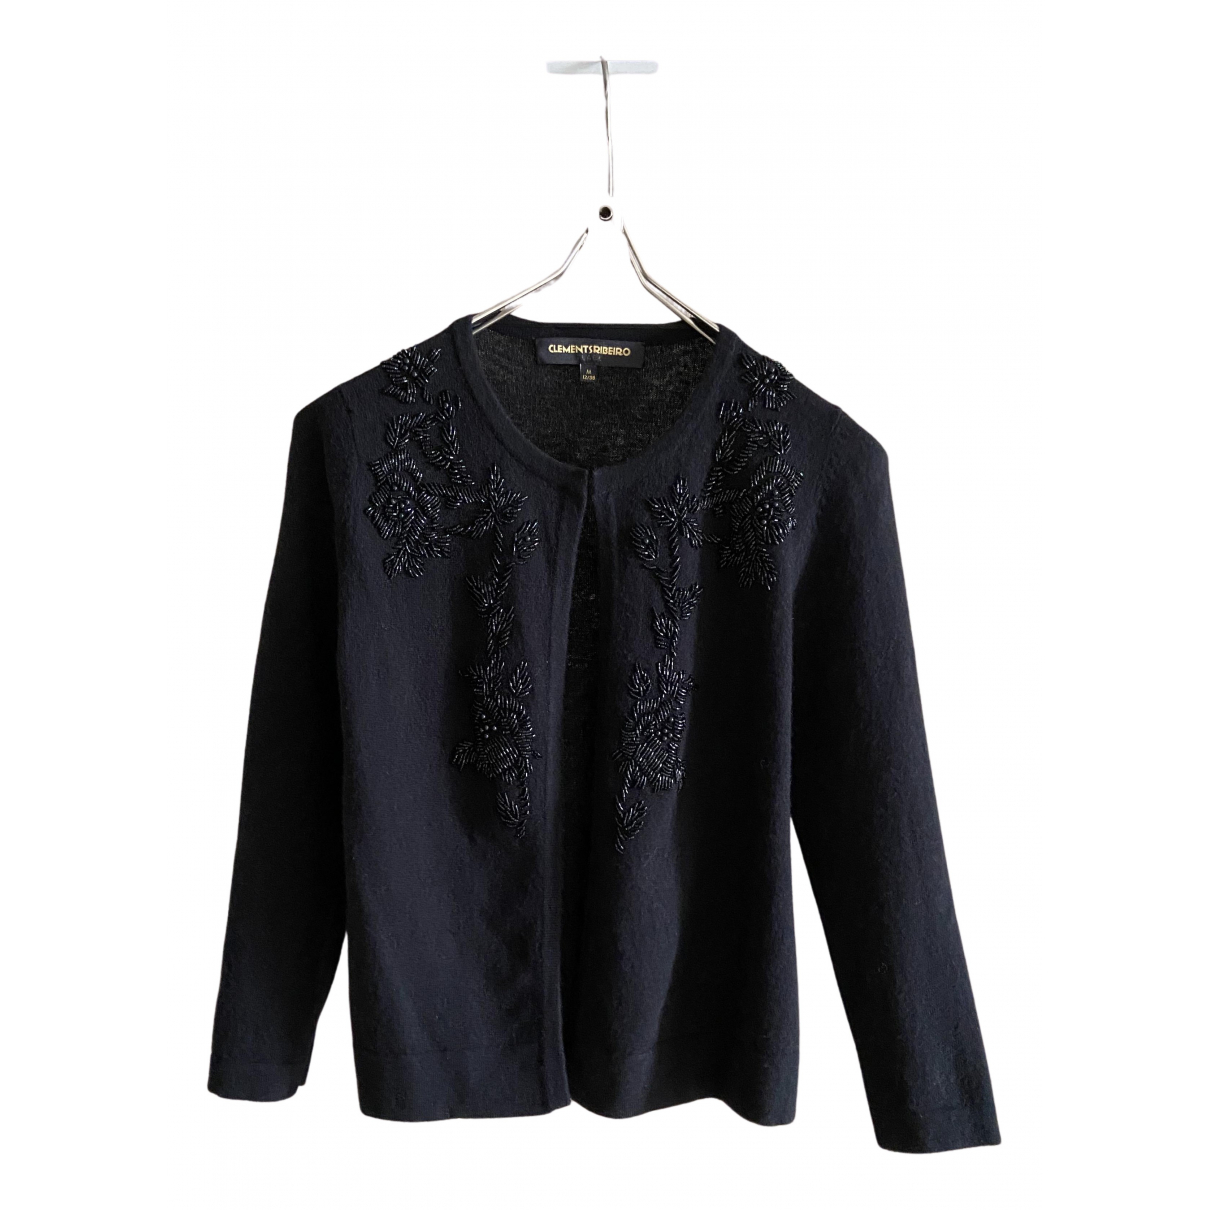 Clements Ribeiro \N Pullover in  Schwarz Wolle